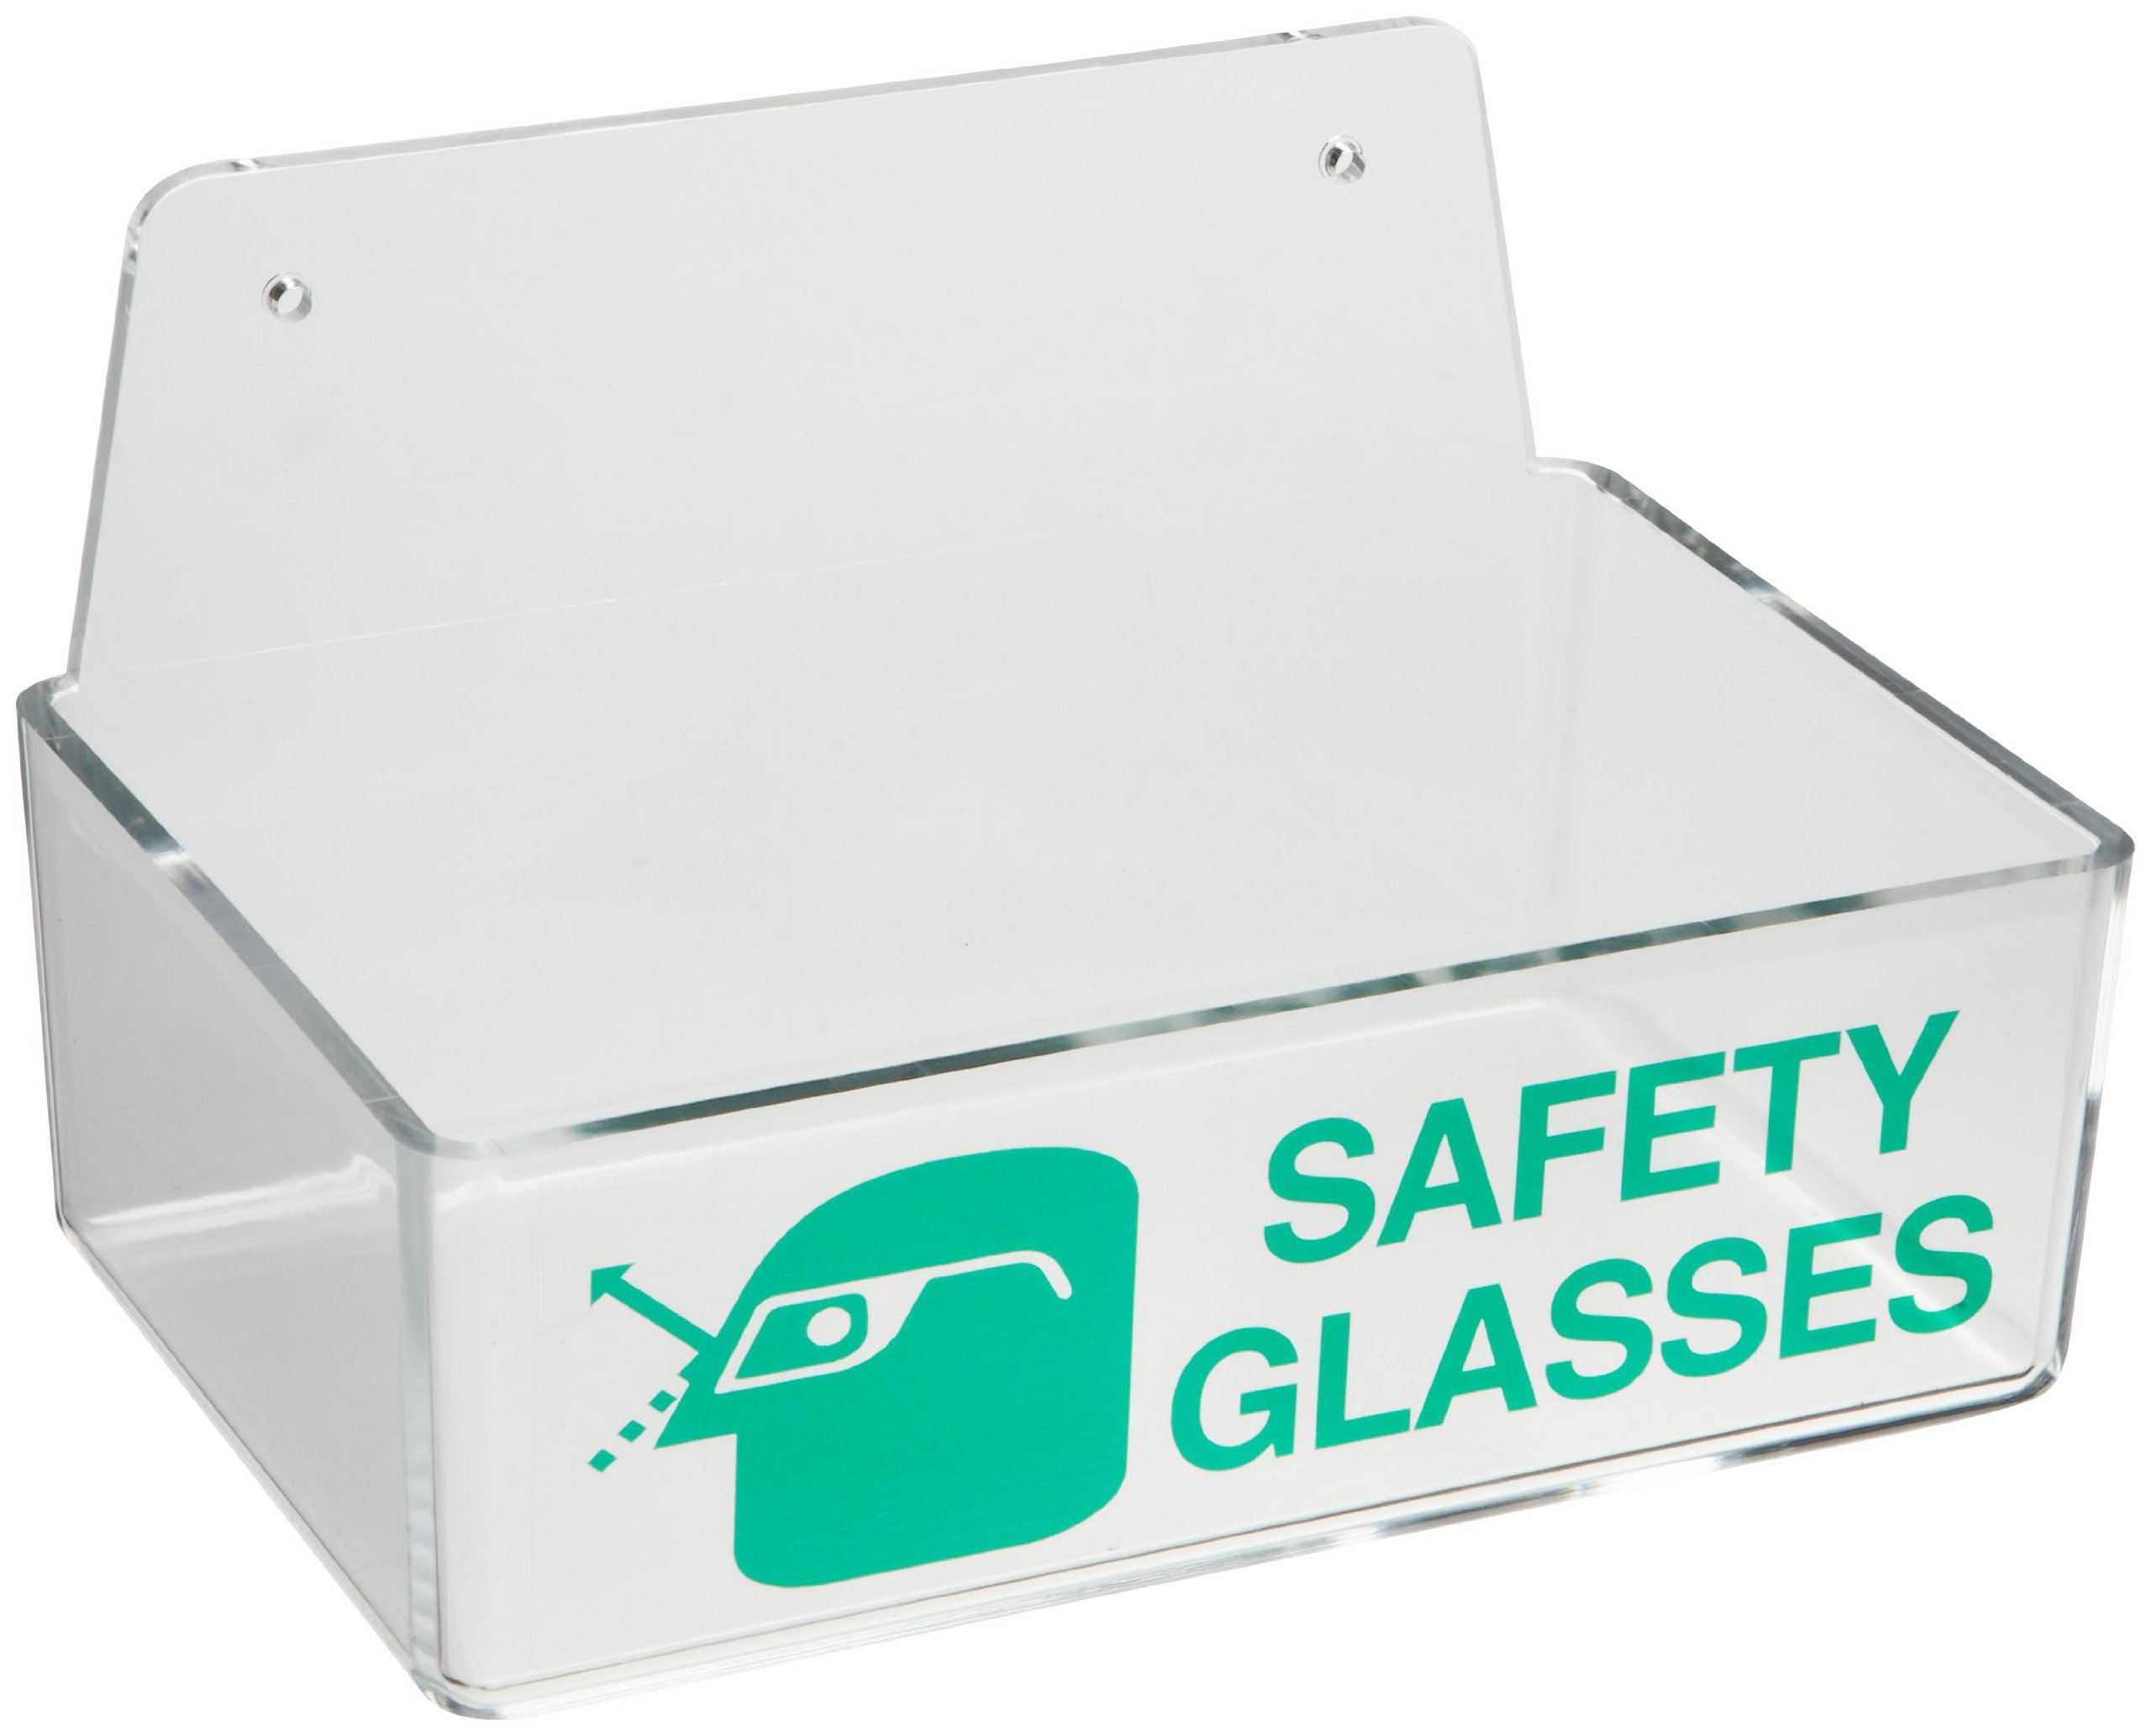 Brady Safety Glasses Holder - Green Text on Clear Plastic, Legend''Safety Glasses'' - 3'' Height, 9'' Width, 6'' Depth - 45234